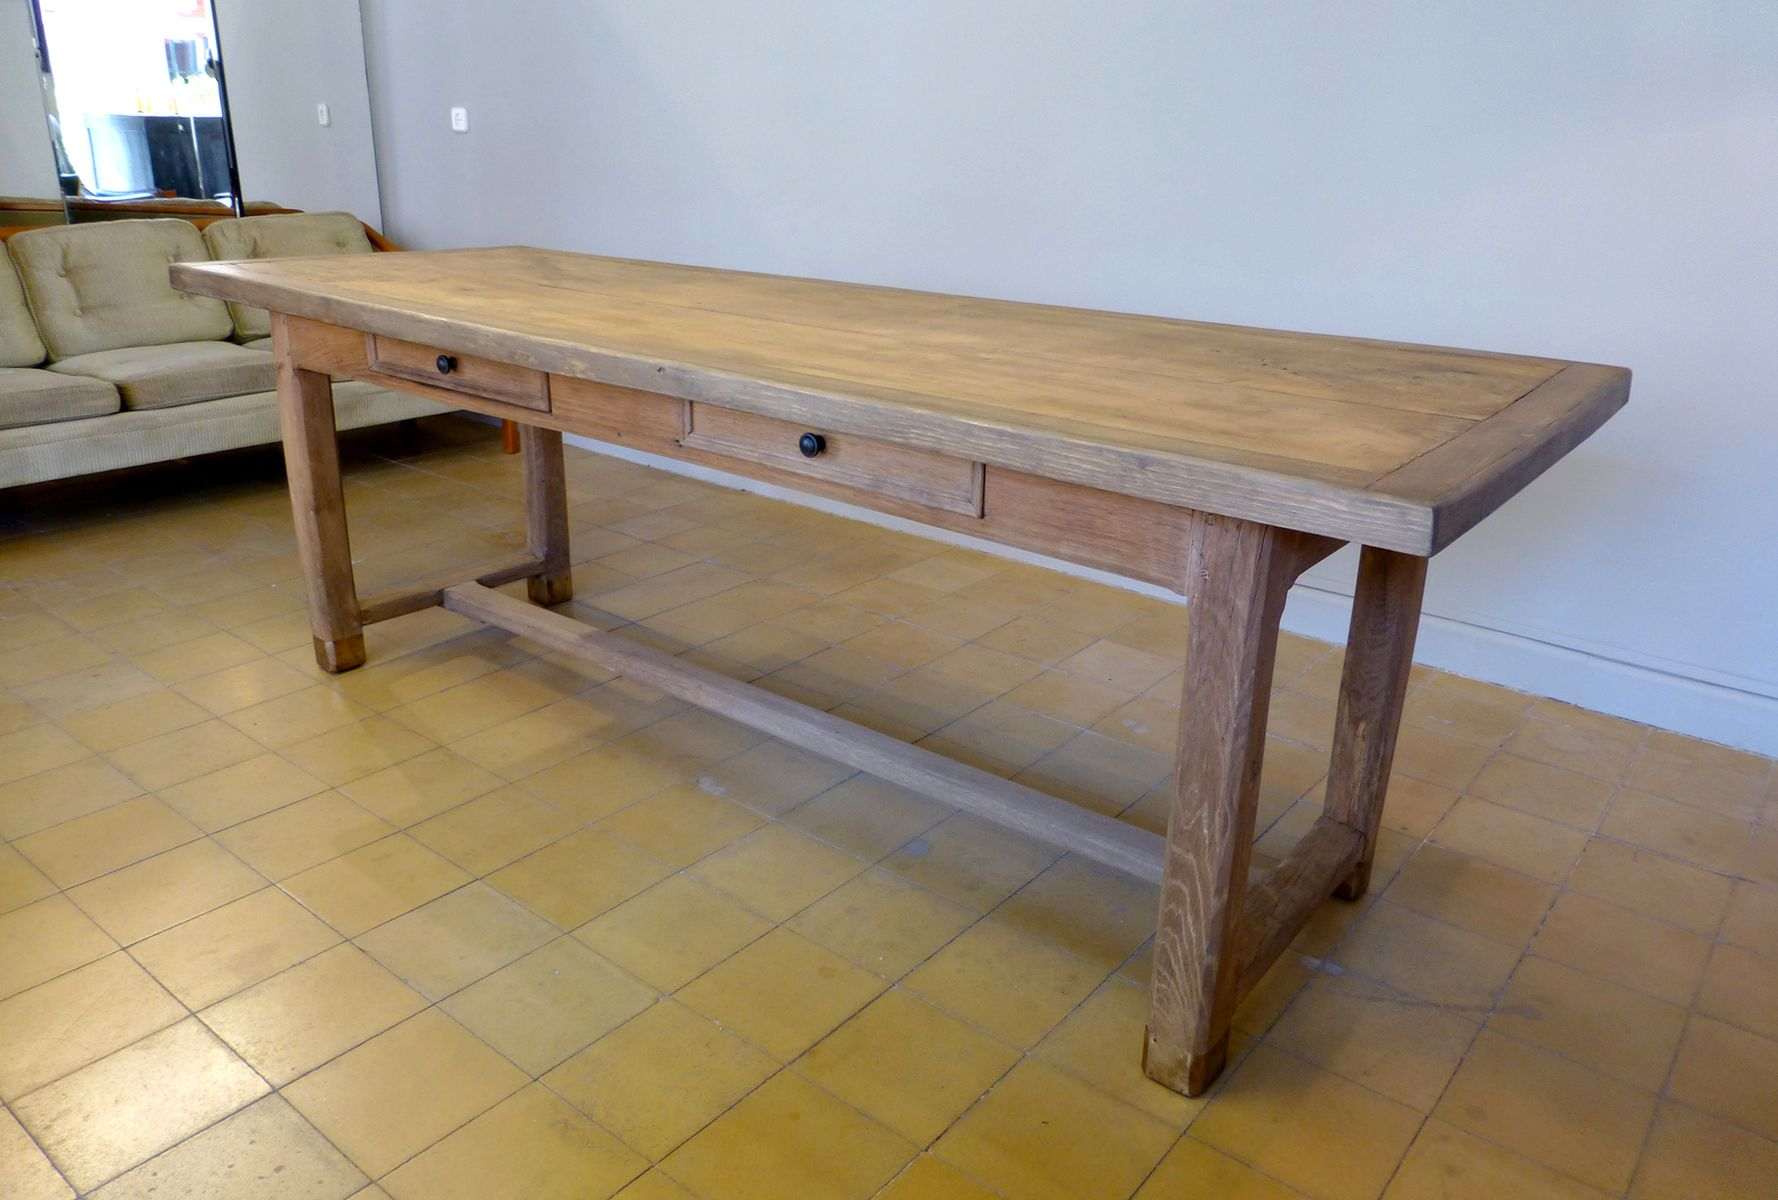 French Oak Dining Table with Two Drawers for sale at Pamono : french oak dining table with two drawers 1 from www.pamono.com size 1777 x 1200 jpeg 140kB